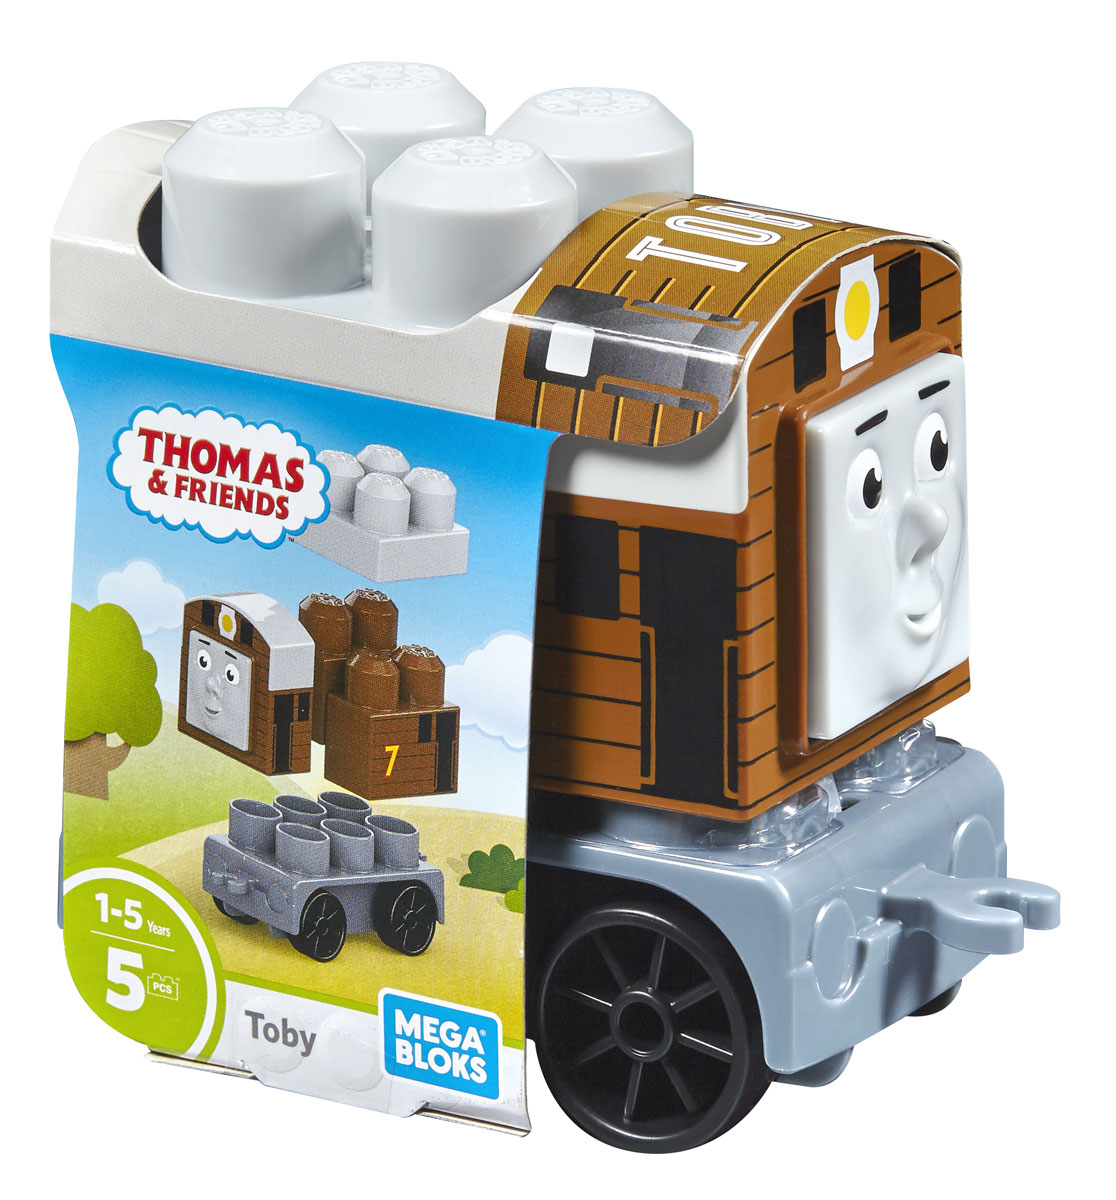 Mega Bloks Thomas & Friends Конструктор Паровозик Тоби